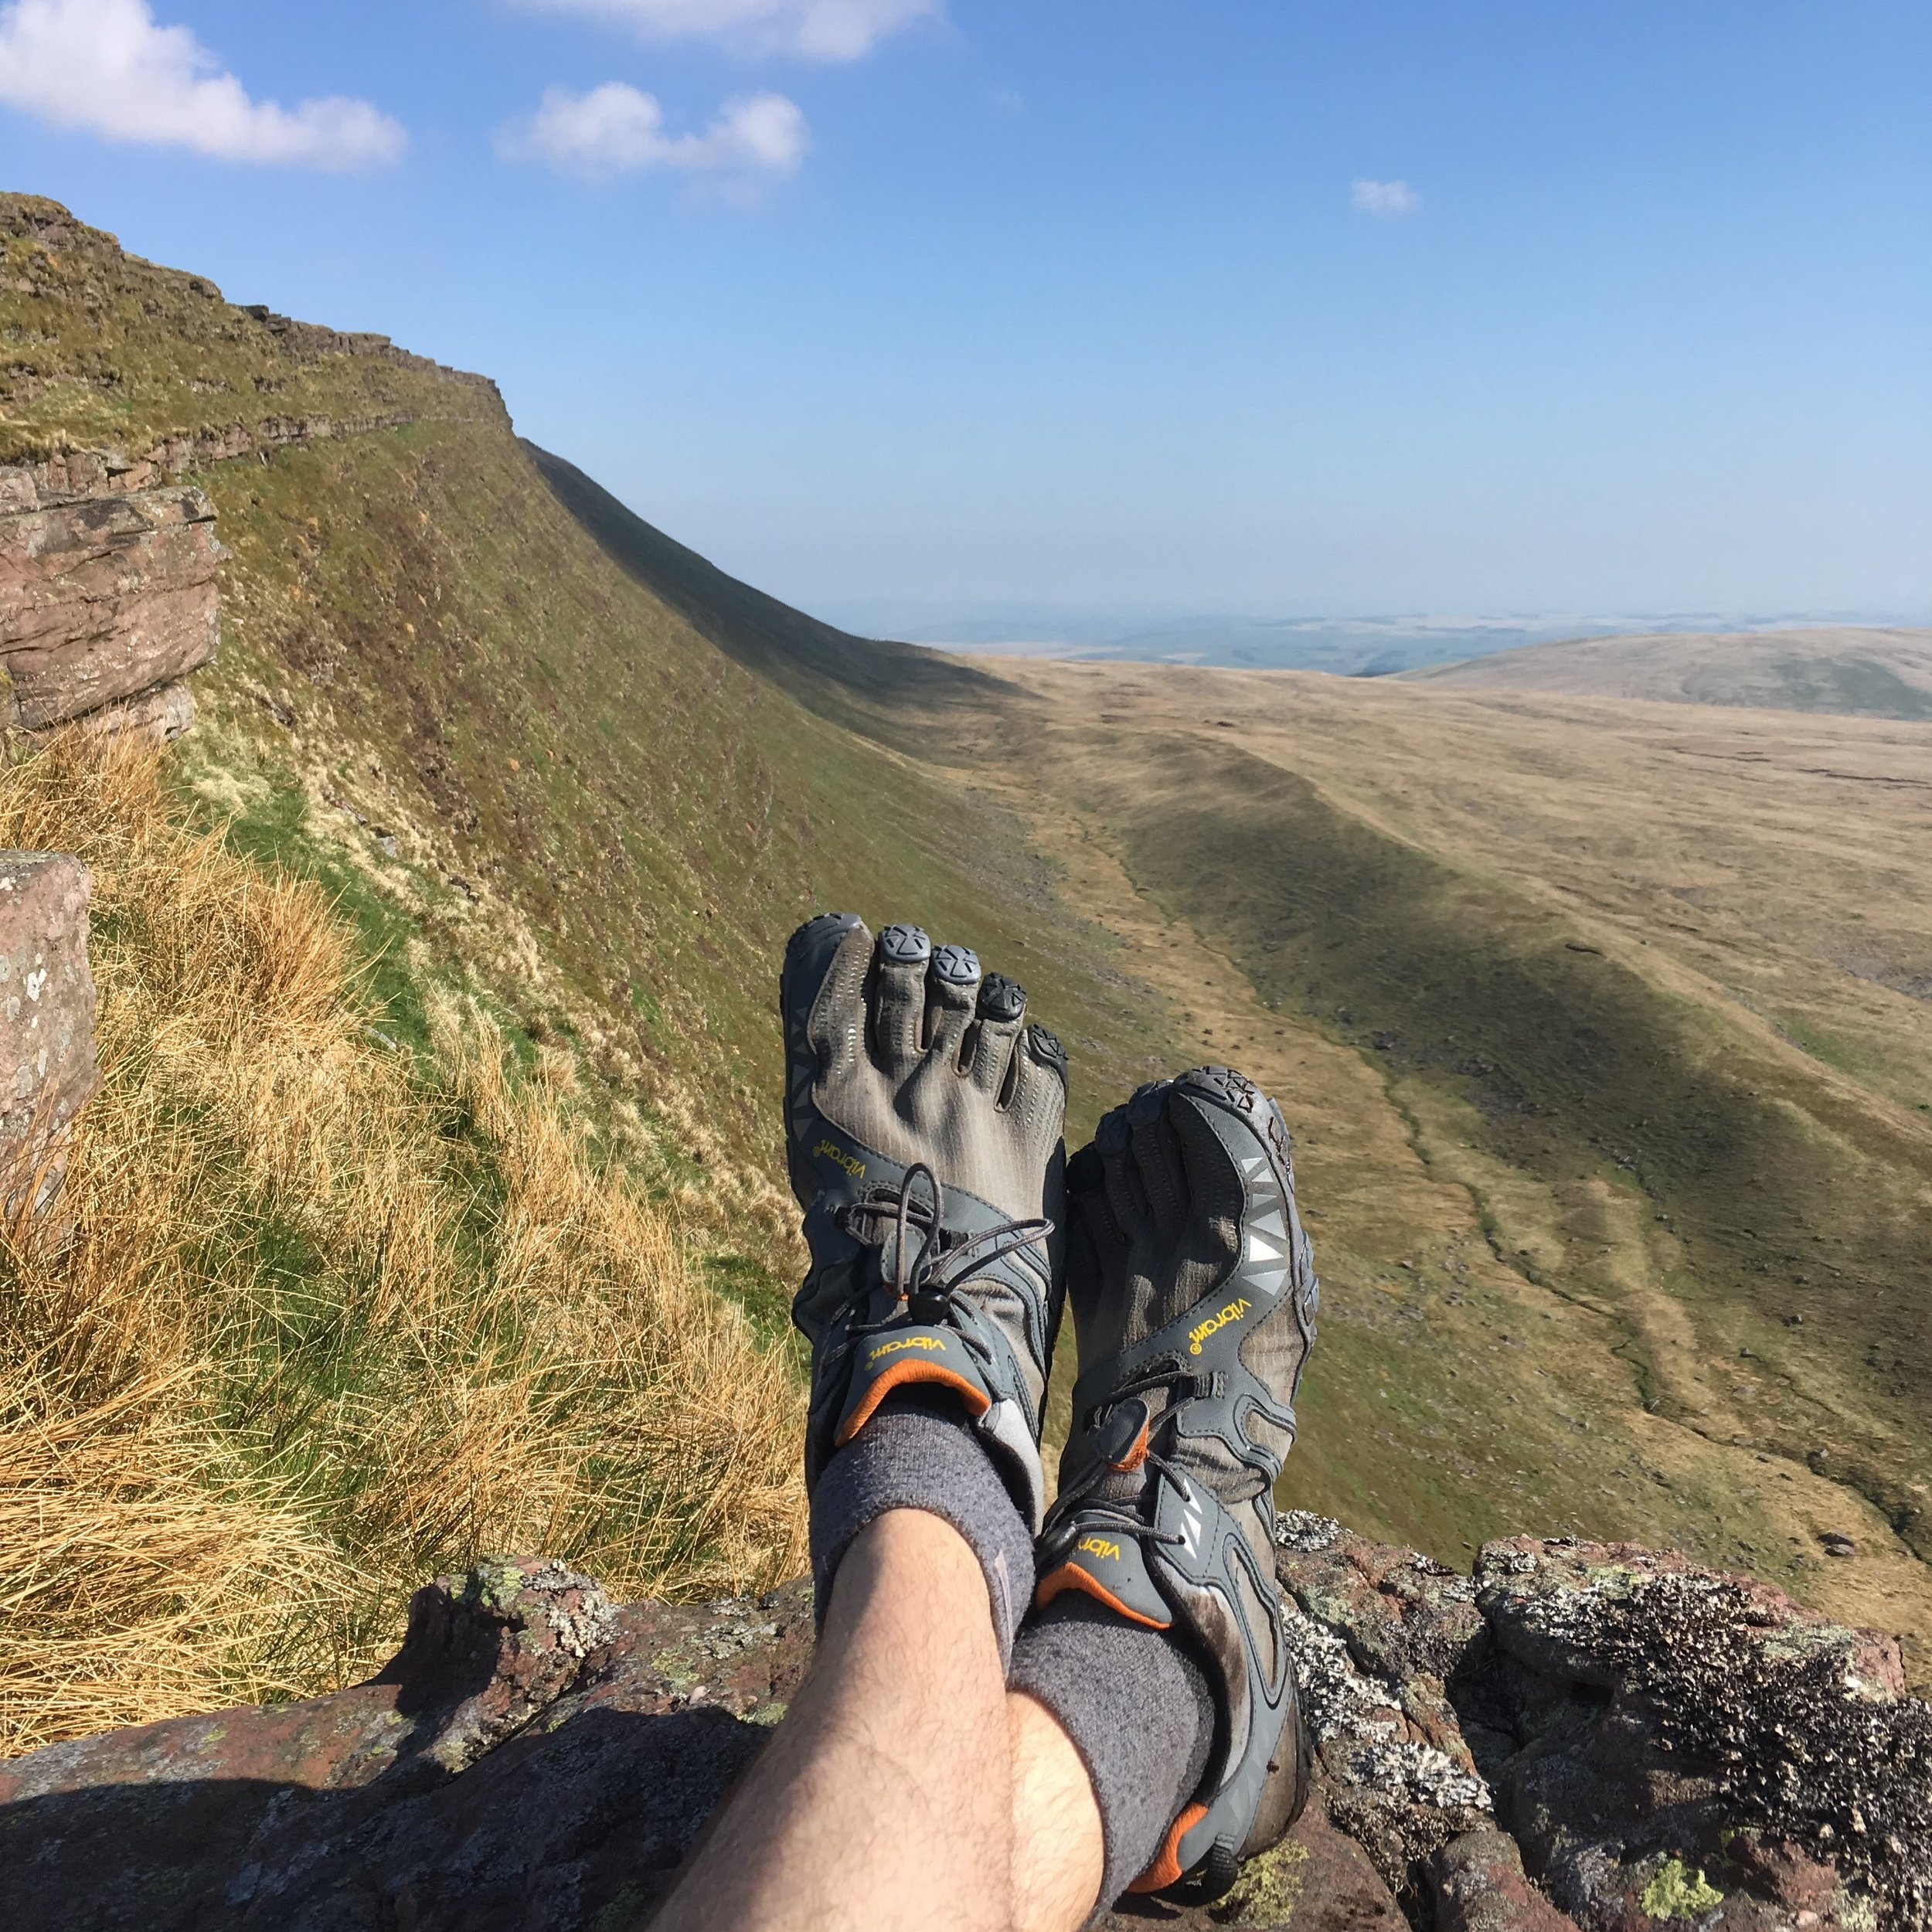 Yes, you can hike in Vibram FiveFingers